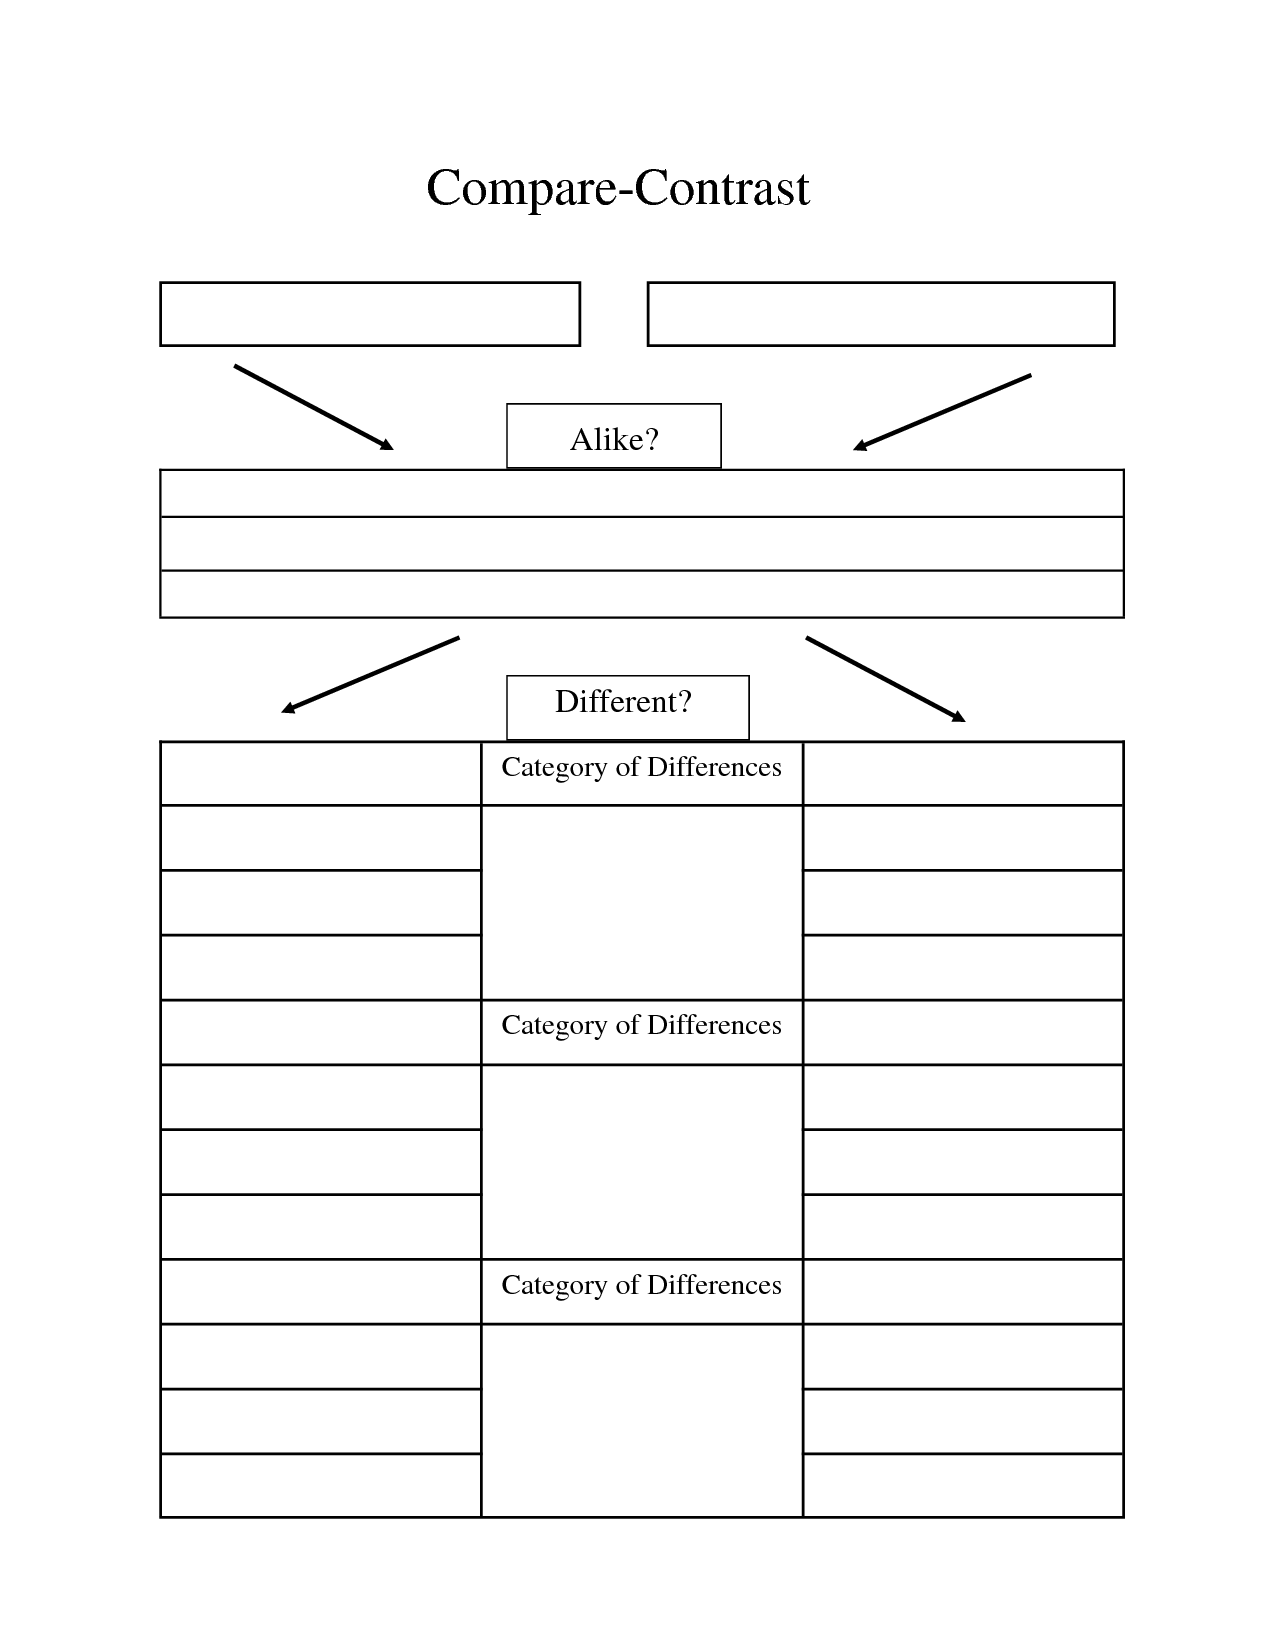 compare and contrast essay outline doc A simple compare and contrast essay outline: the similarities and differences  between automobiles and bicycles topic: compare and contrast automobiles.